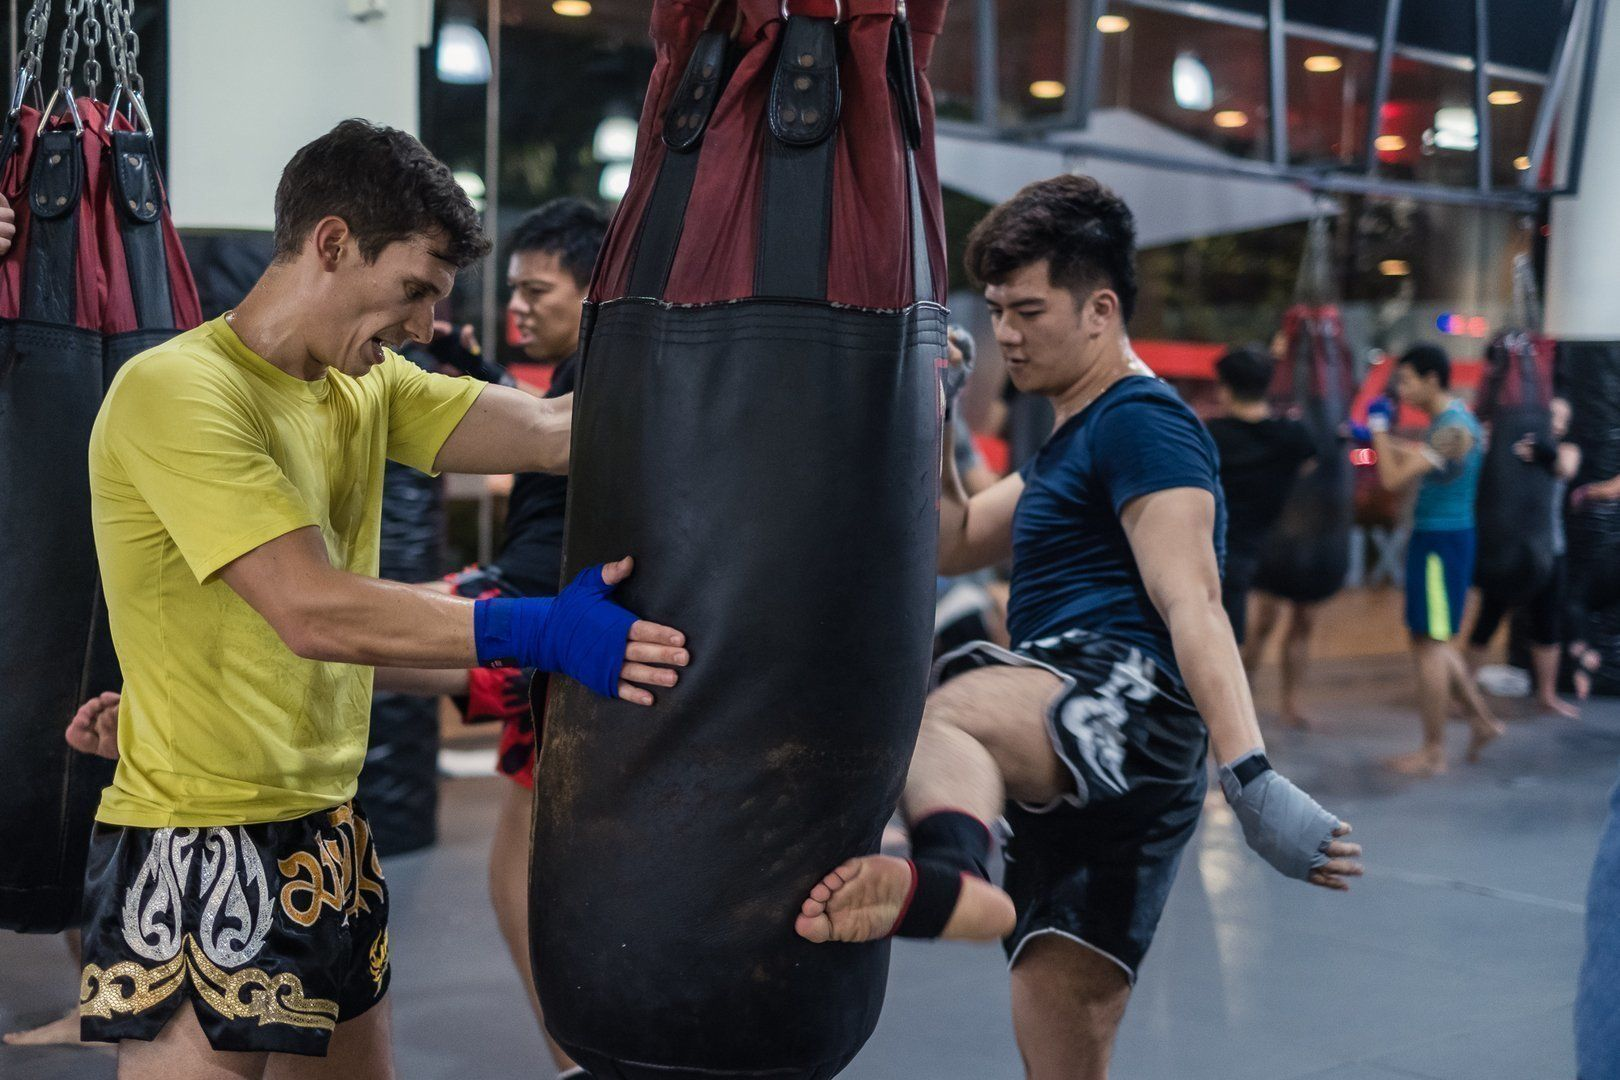 Two friends train Muay Thai at Evolve